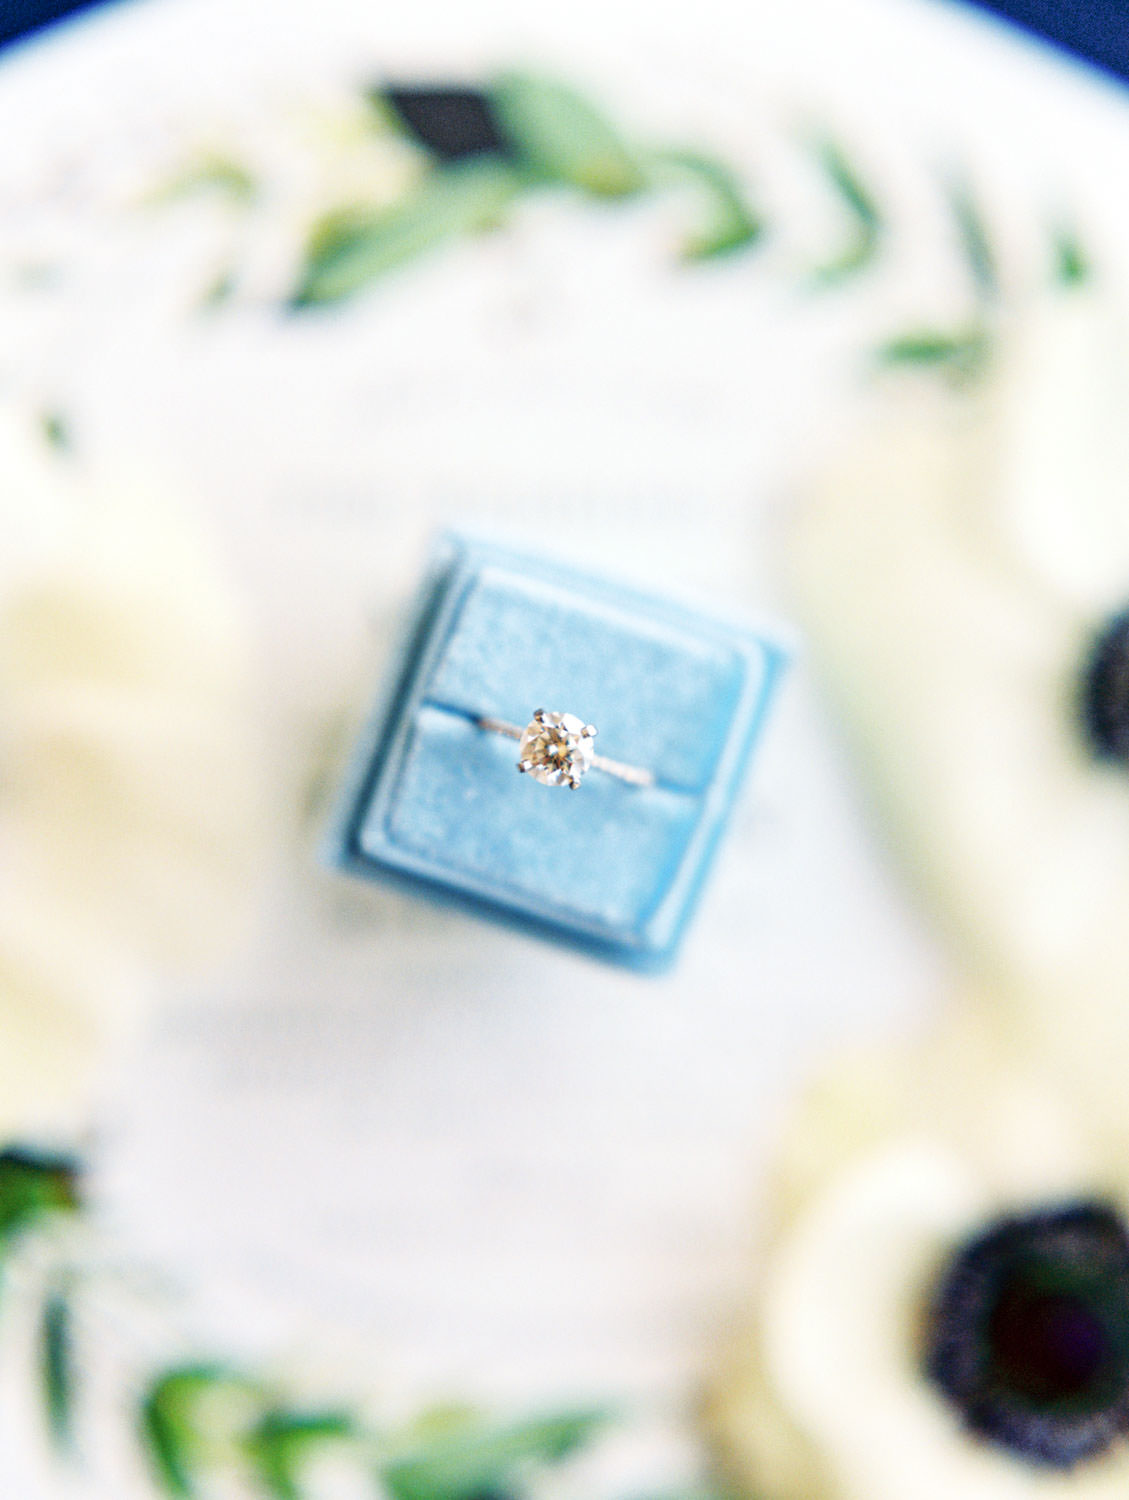 Solitaire engagement ring in blue velvet ring box surrounded by anemones and invitation on film, Wedding at Humphreys Half Moon Inn by Cavin Elizabeth Photography